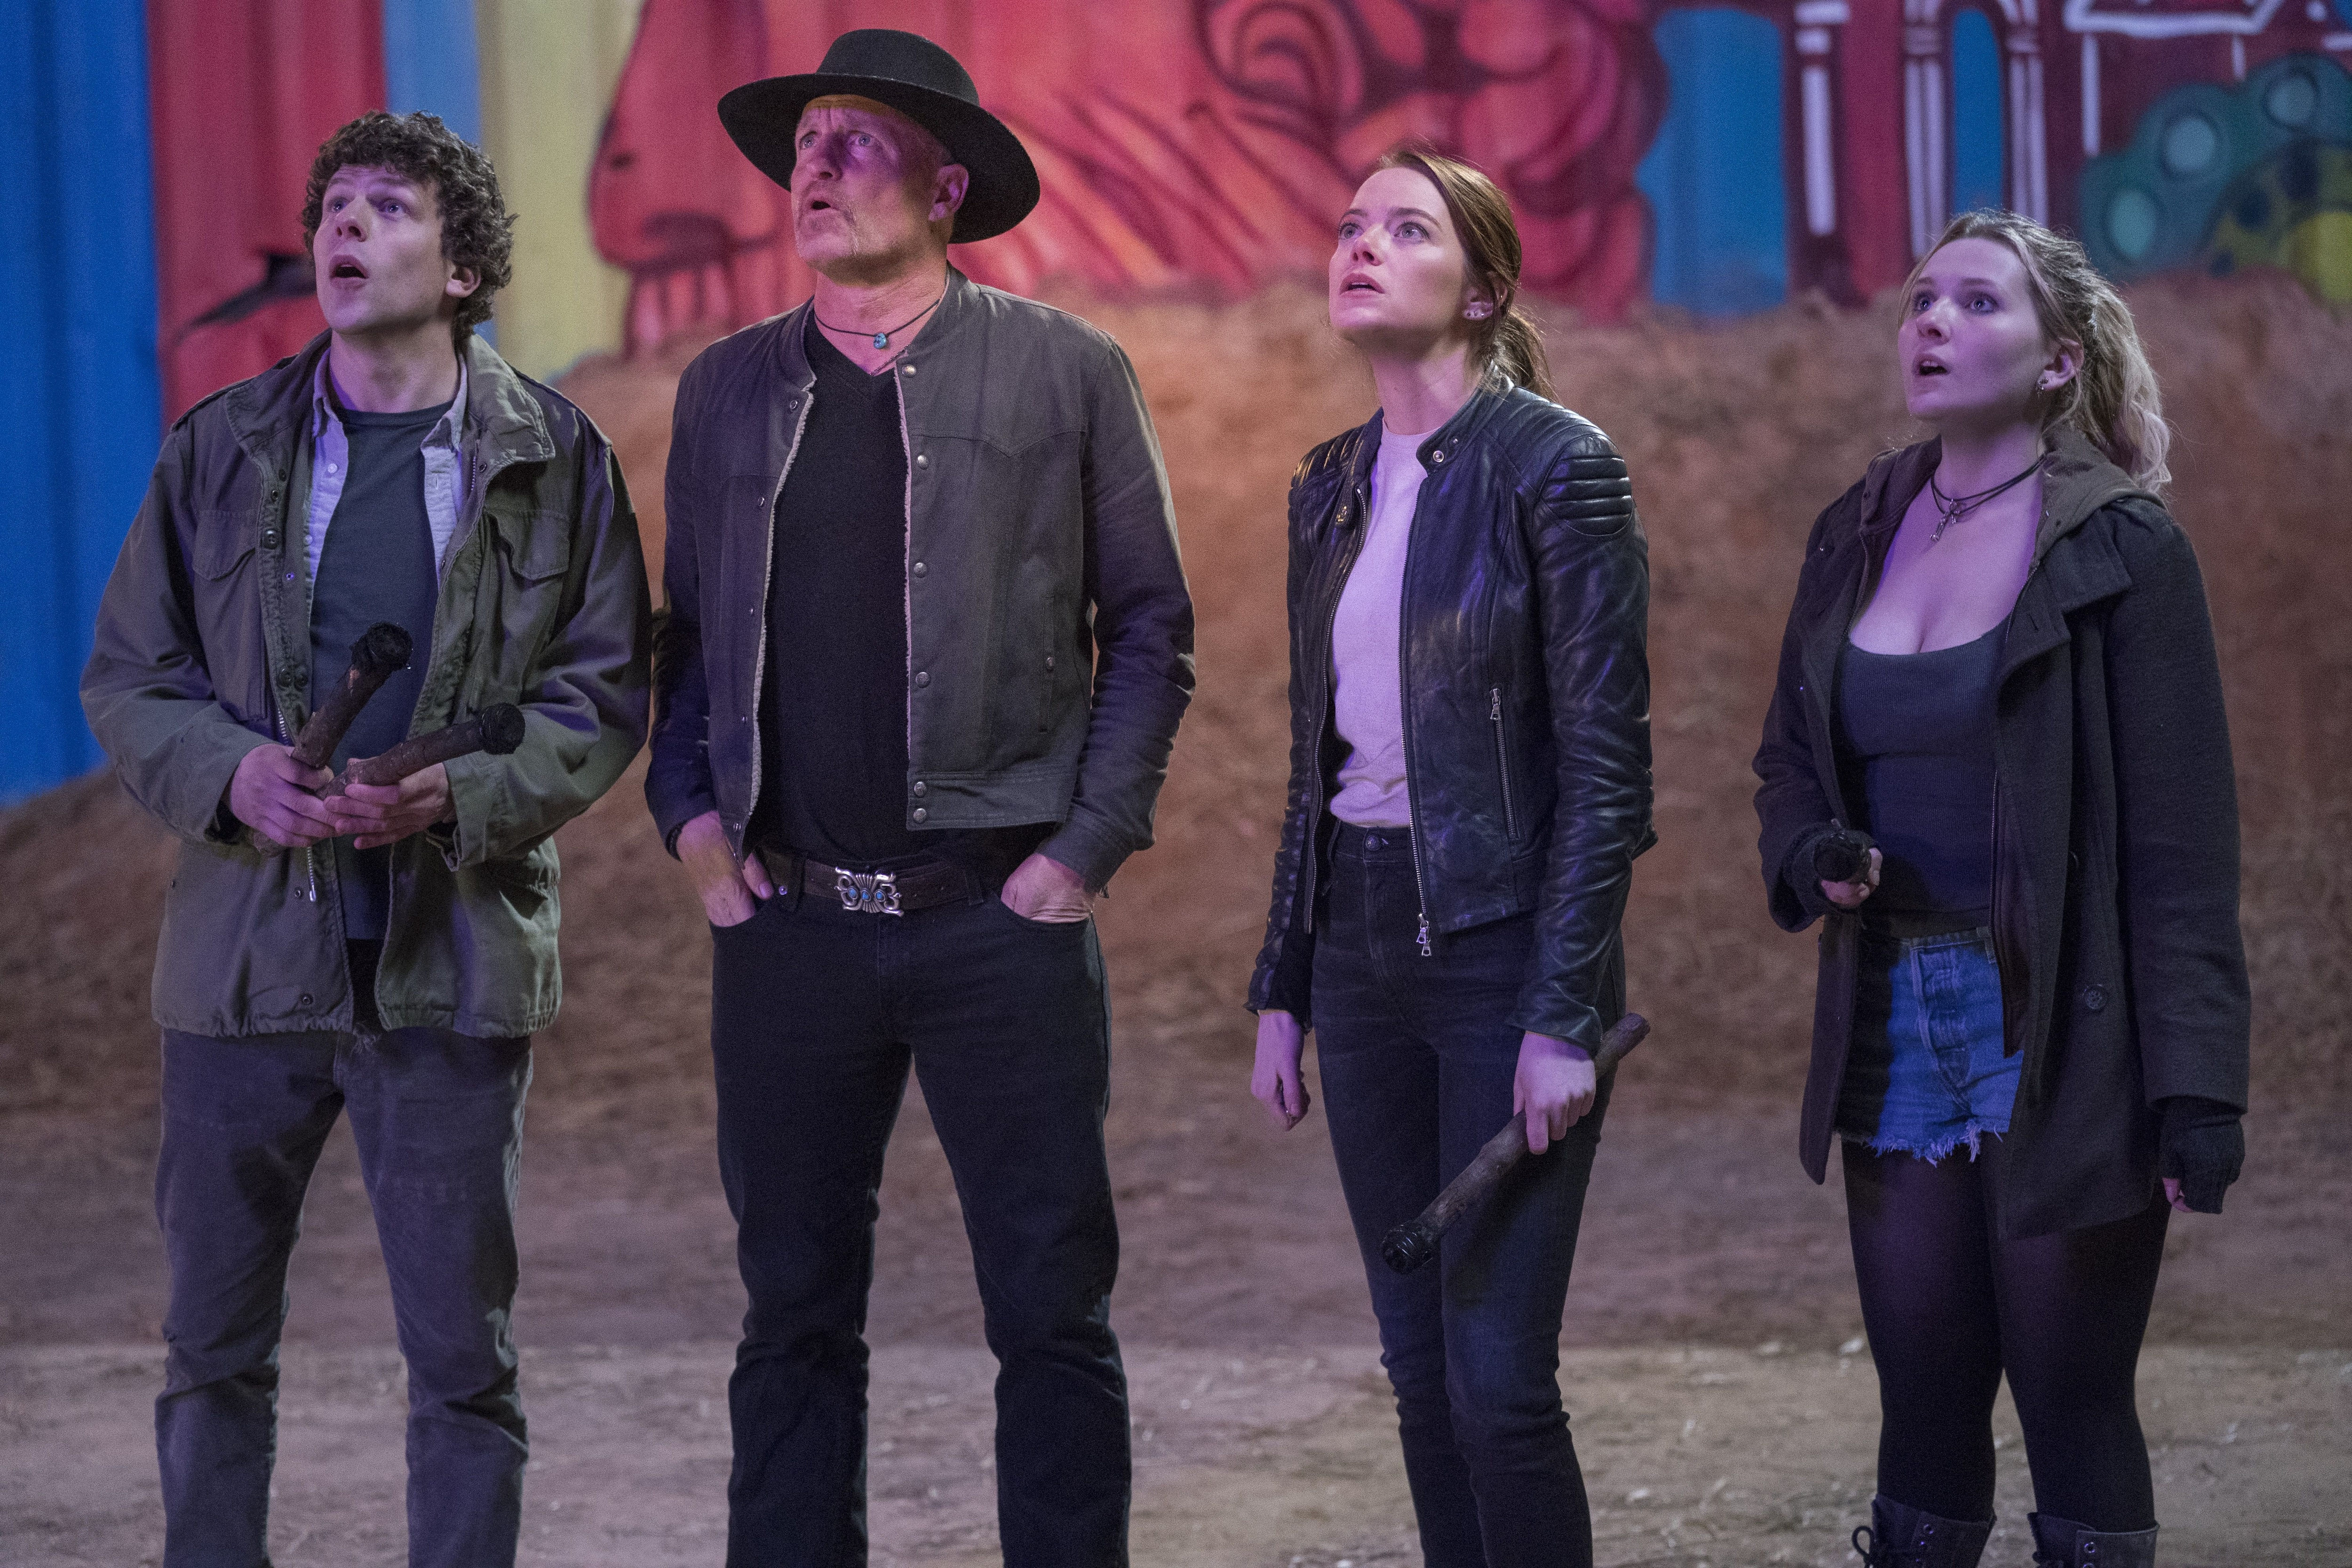 Zombieland: Double Tap is the walking-dead comedy sequel you never knew you kinda didn't really need